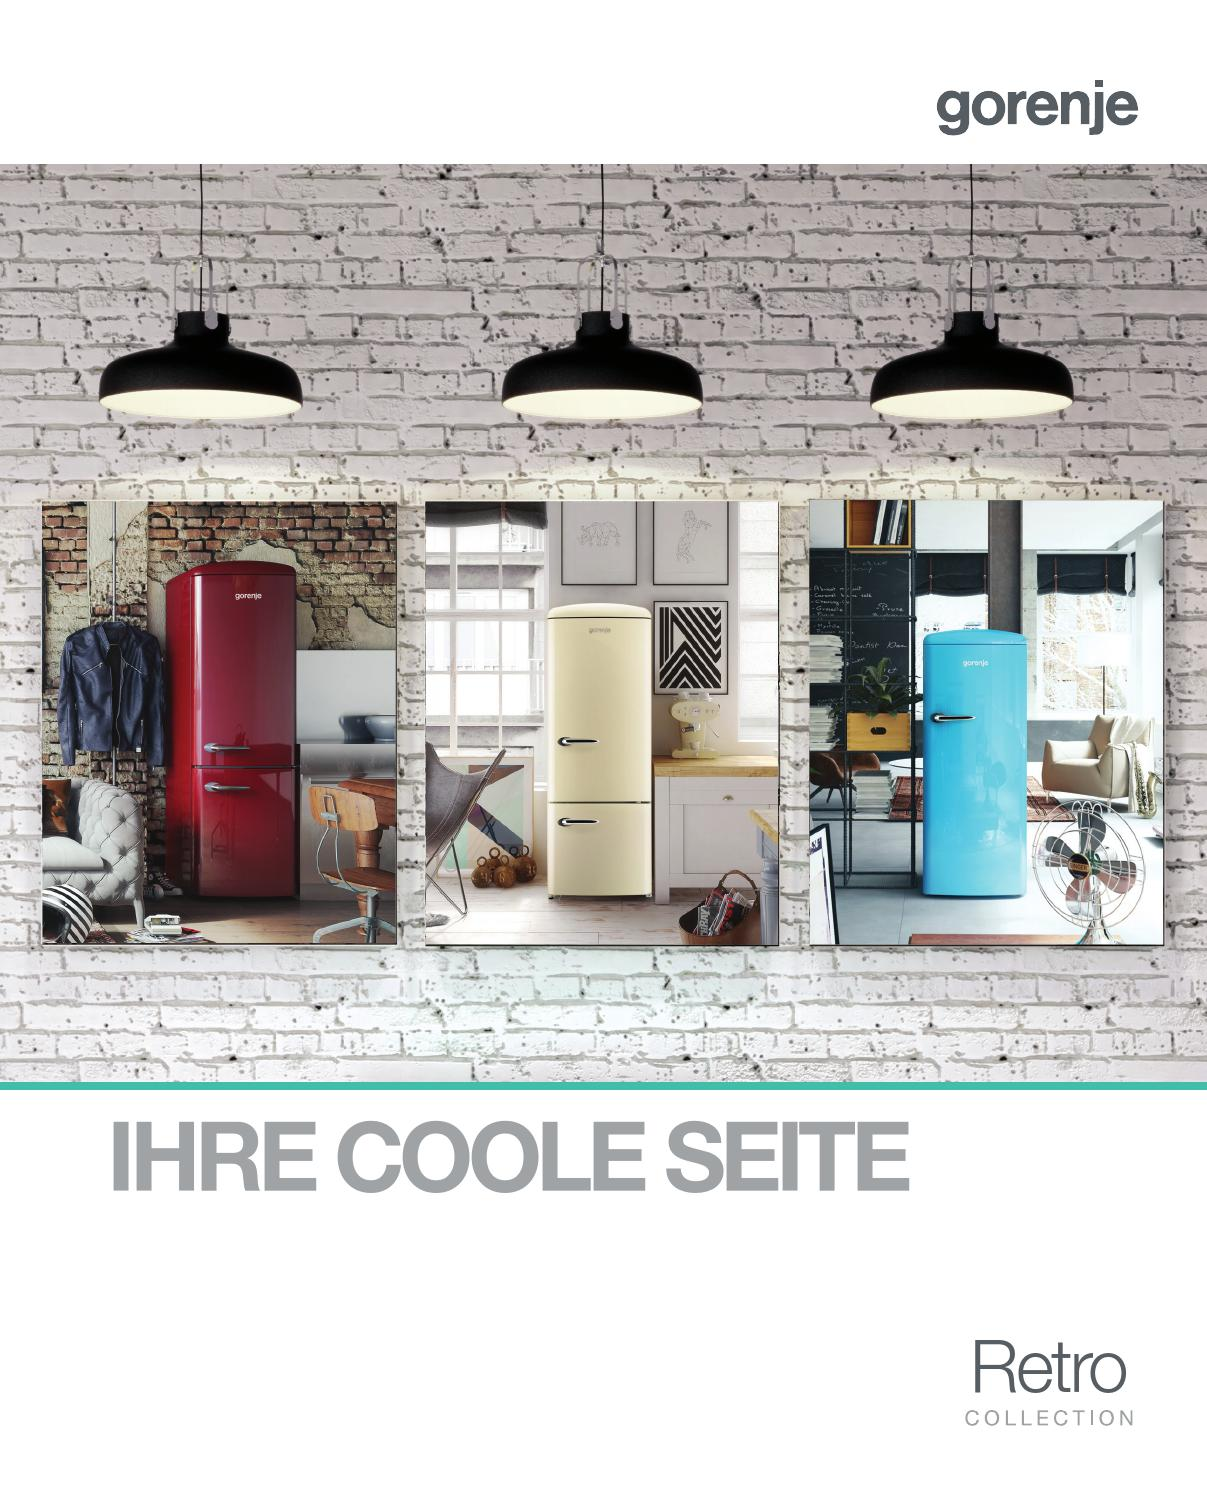 brosch re retro collection by gorenje d d issuu. Black Bedroom Furniture Sets. Home Design Ideas